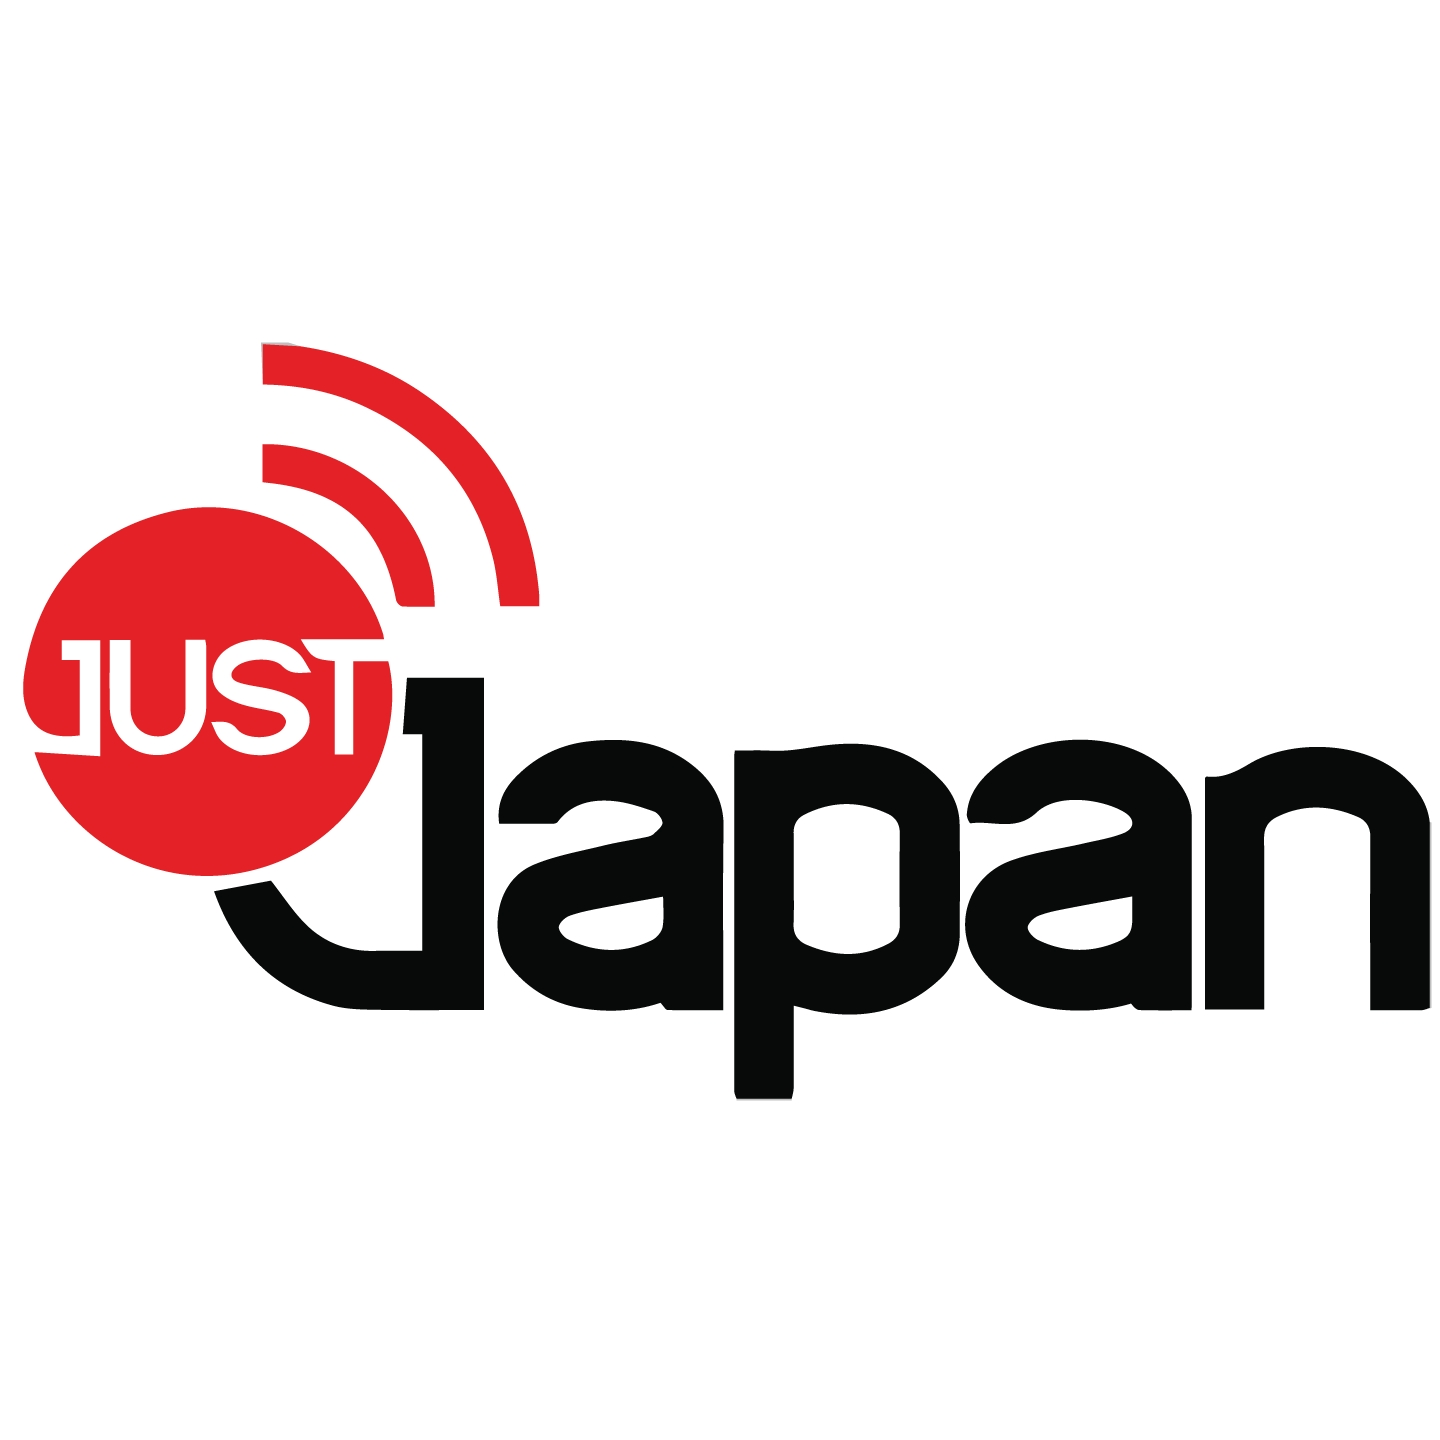 Just Japan Podcast logo